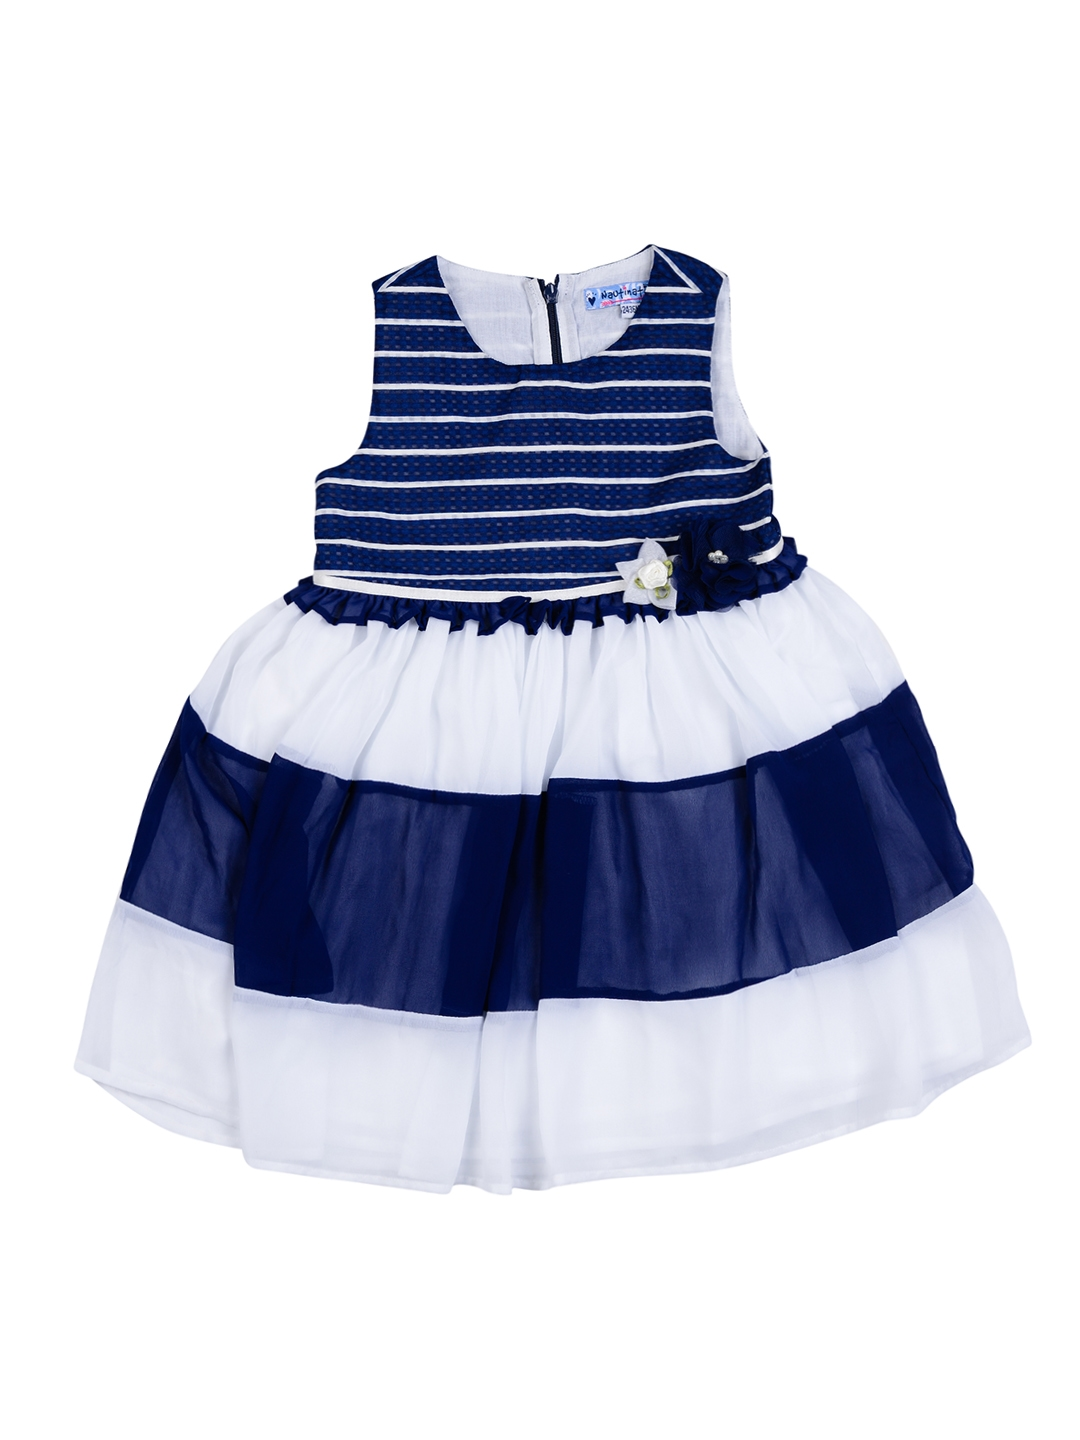 ddb41794d Buy Nauti Nati Girls Navy   White Striped Fit   Flare Dress ...